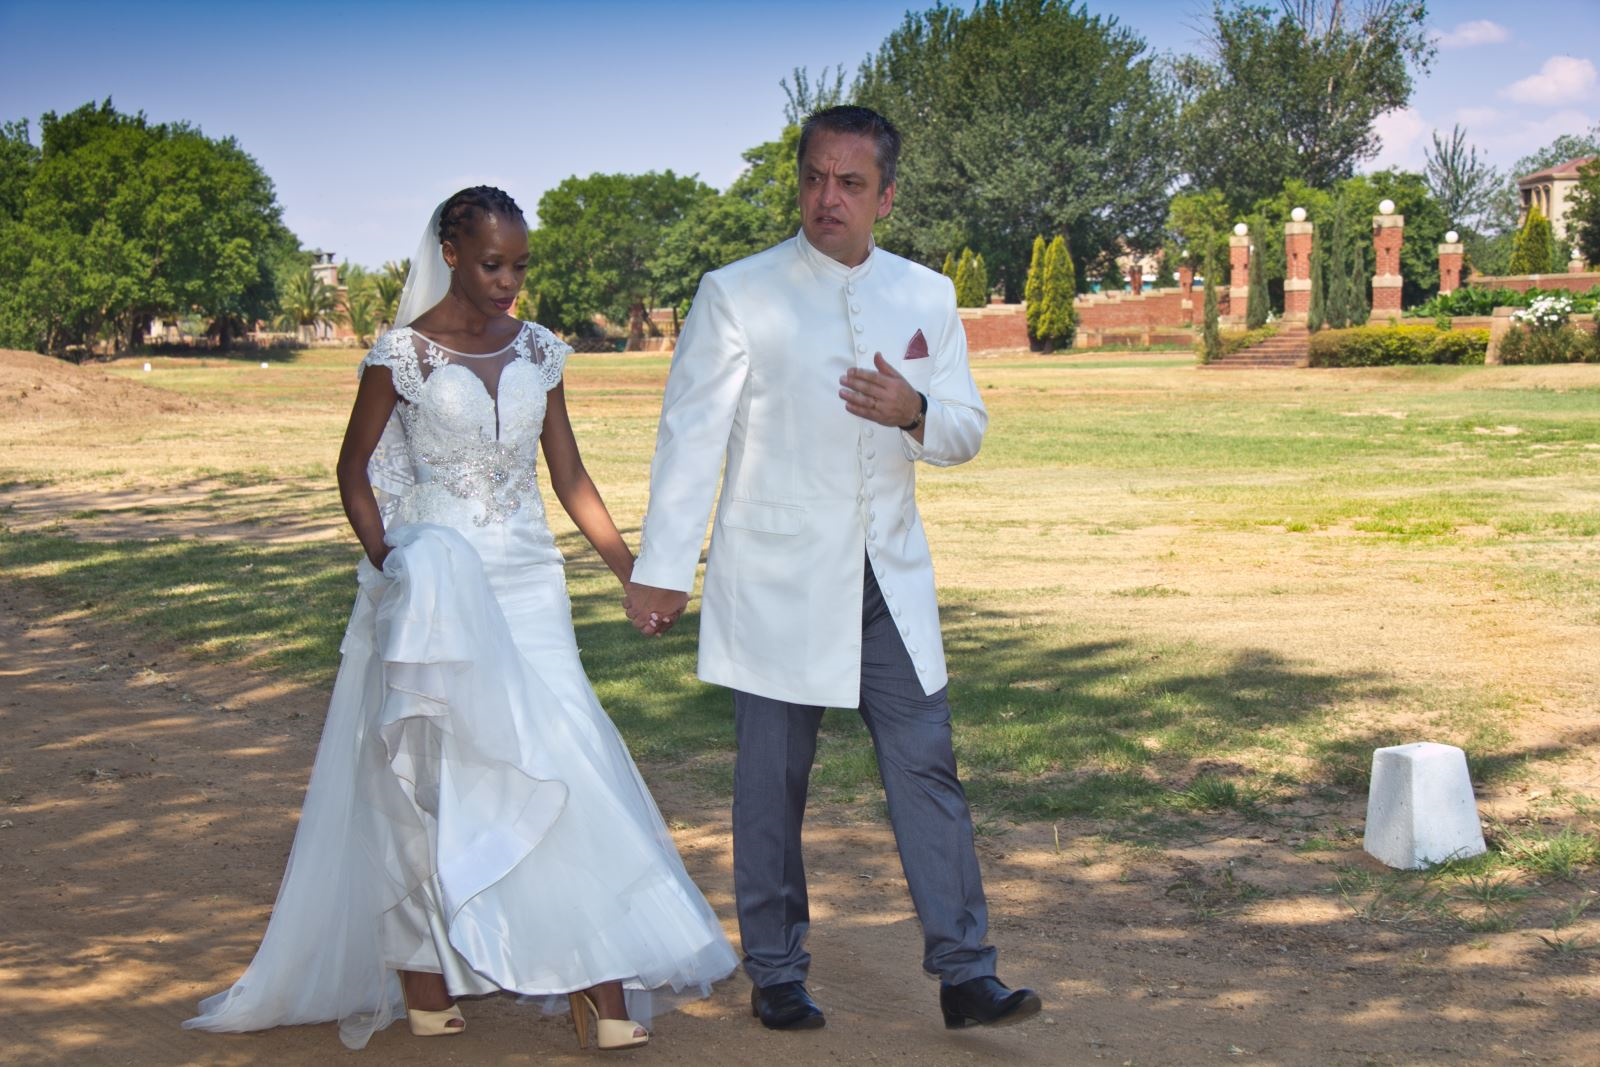 phindi walking. International bride with groom on their wedding day.